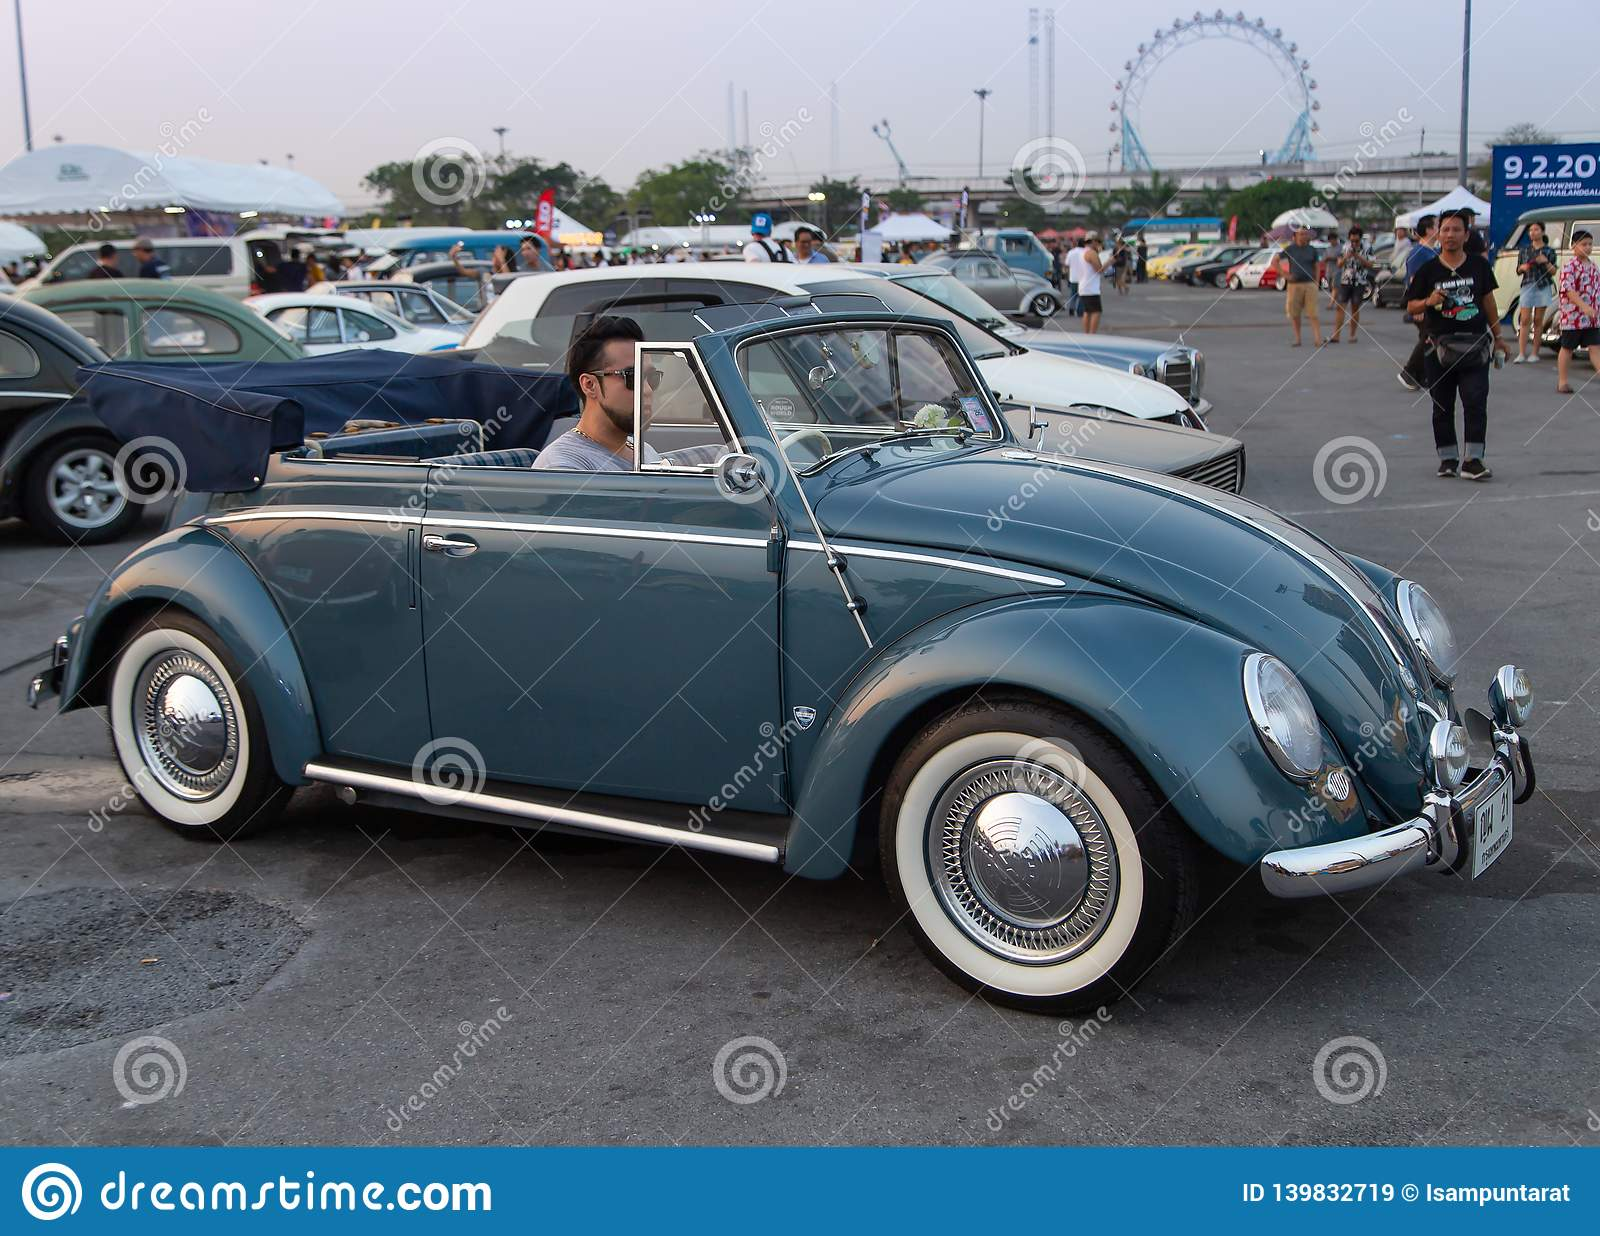 355 Beetle Convertible Volkswagen Photos Free Royalty Free Stock Photos From Dreamstime